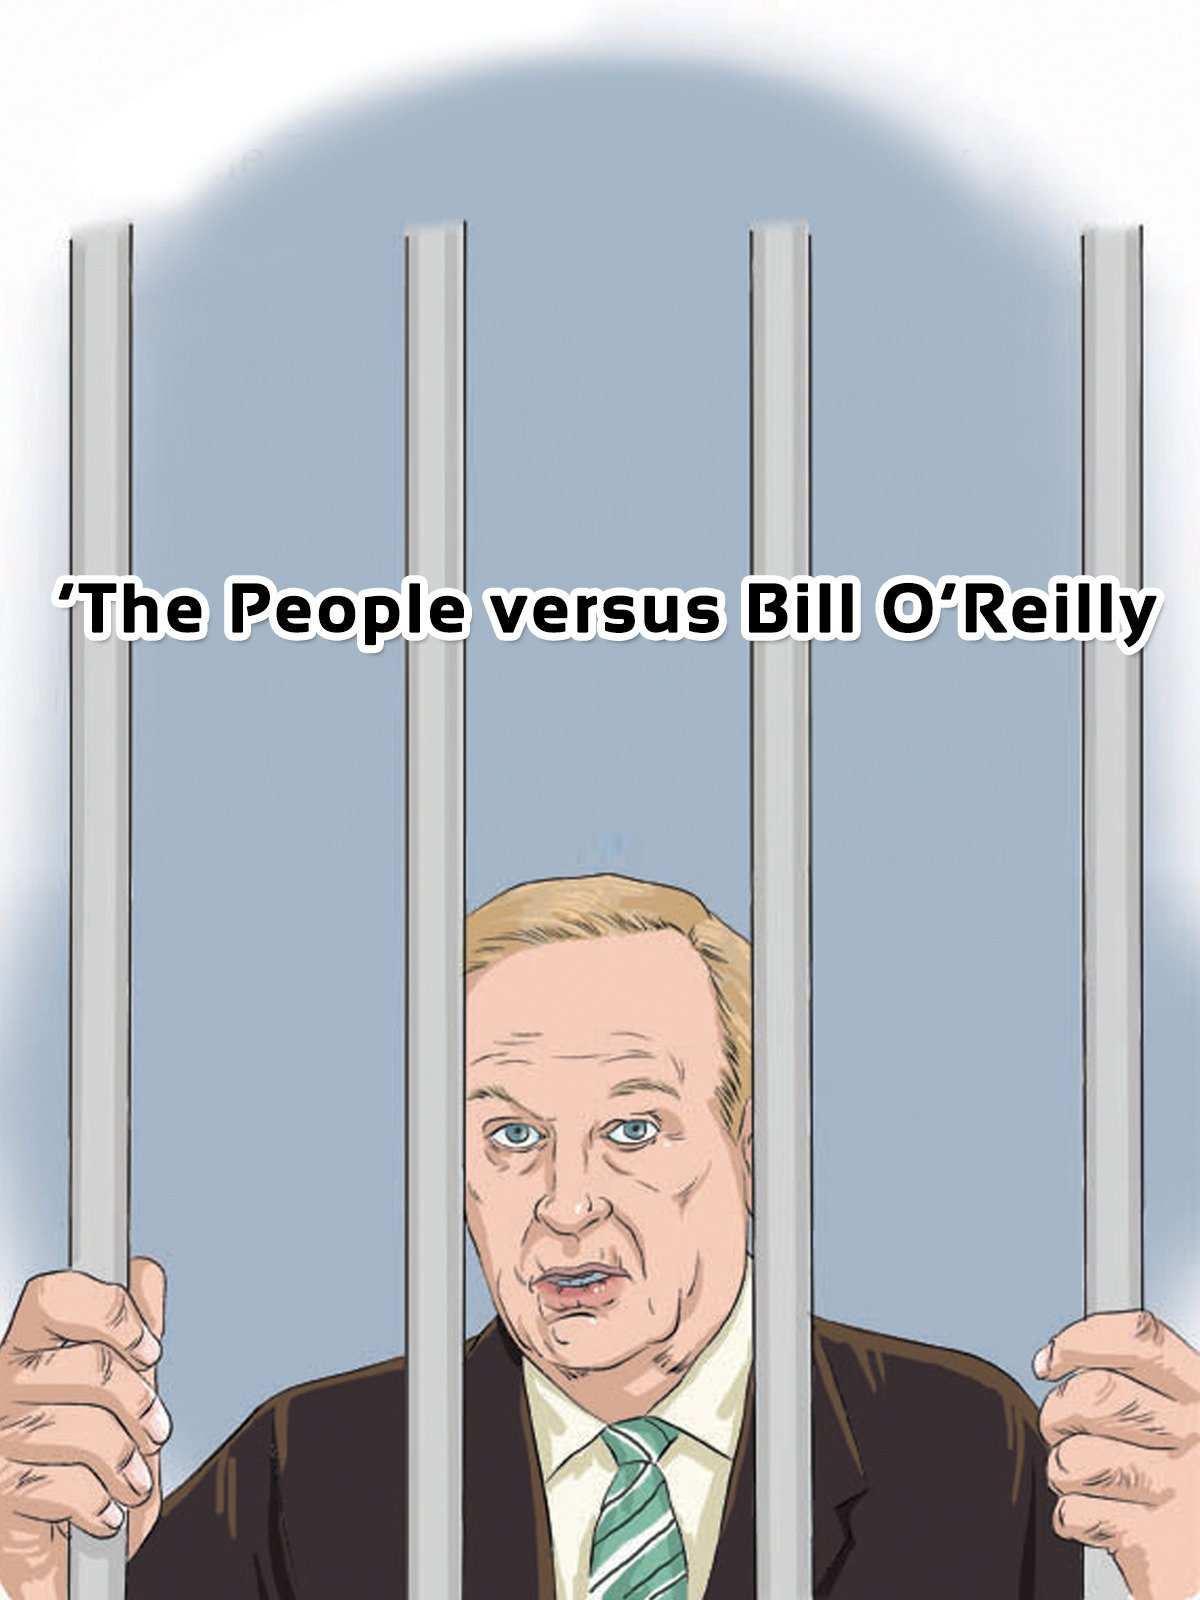 The People versus Bill O'Reilly